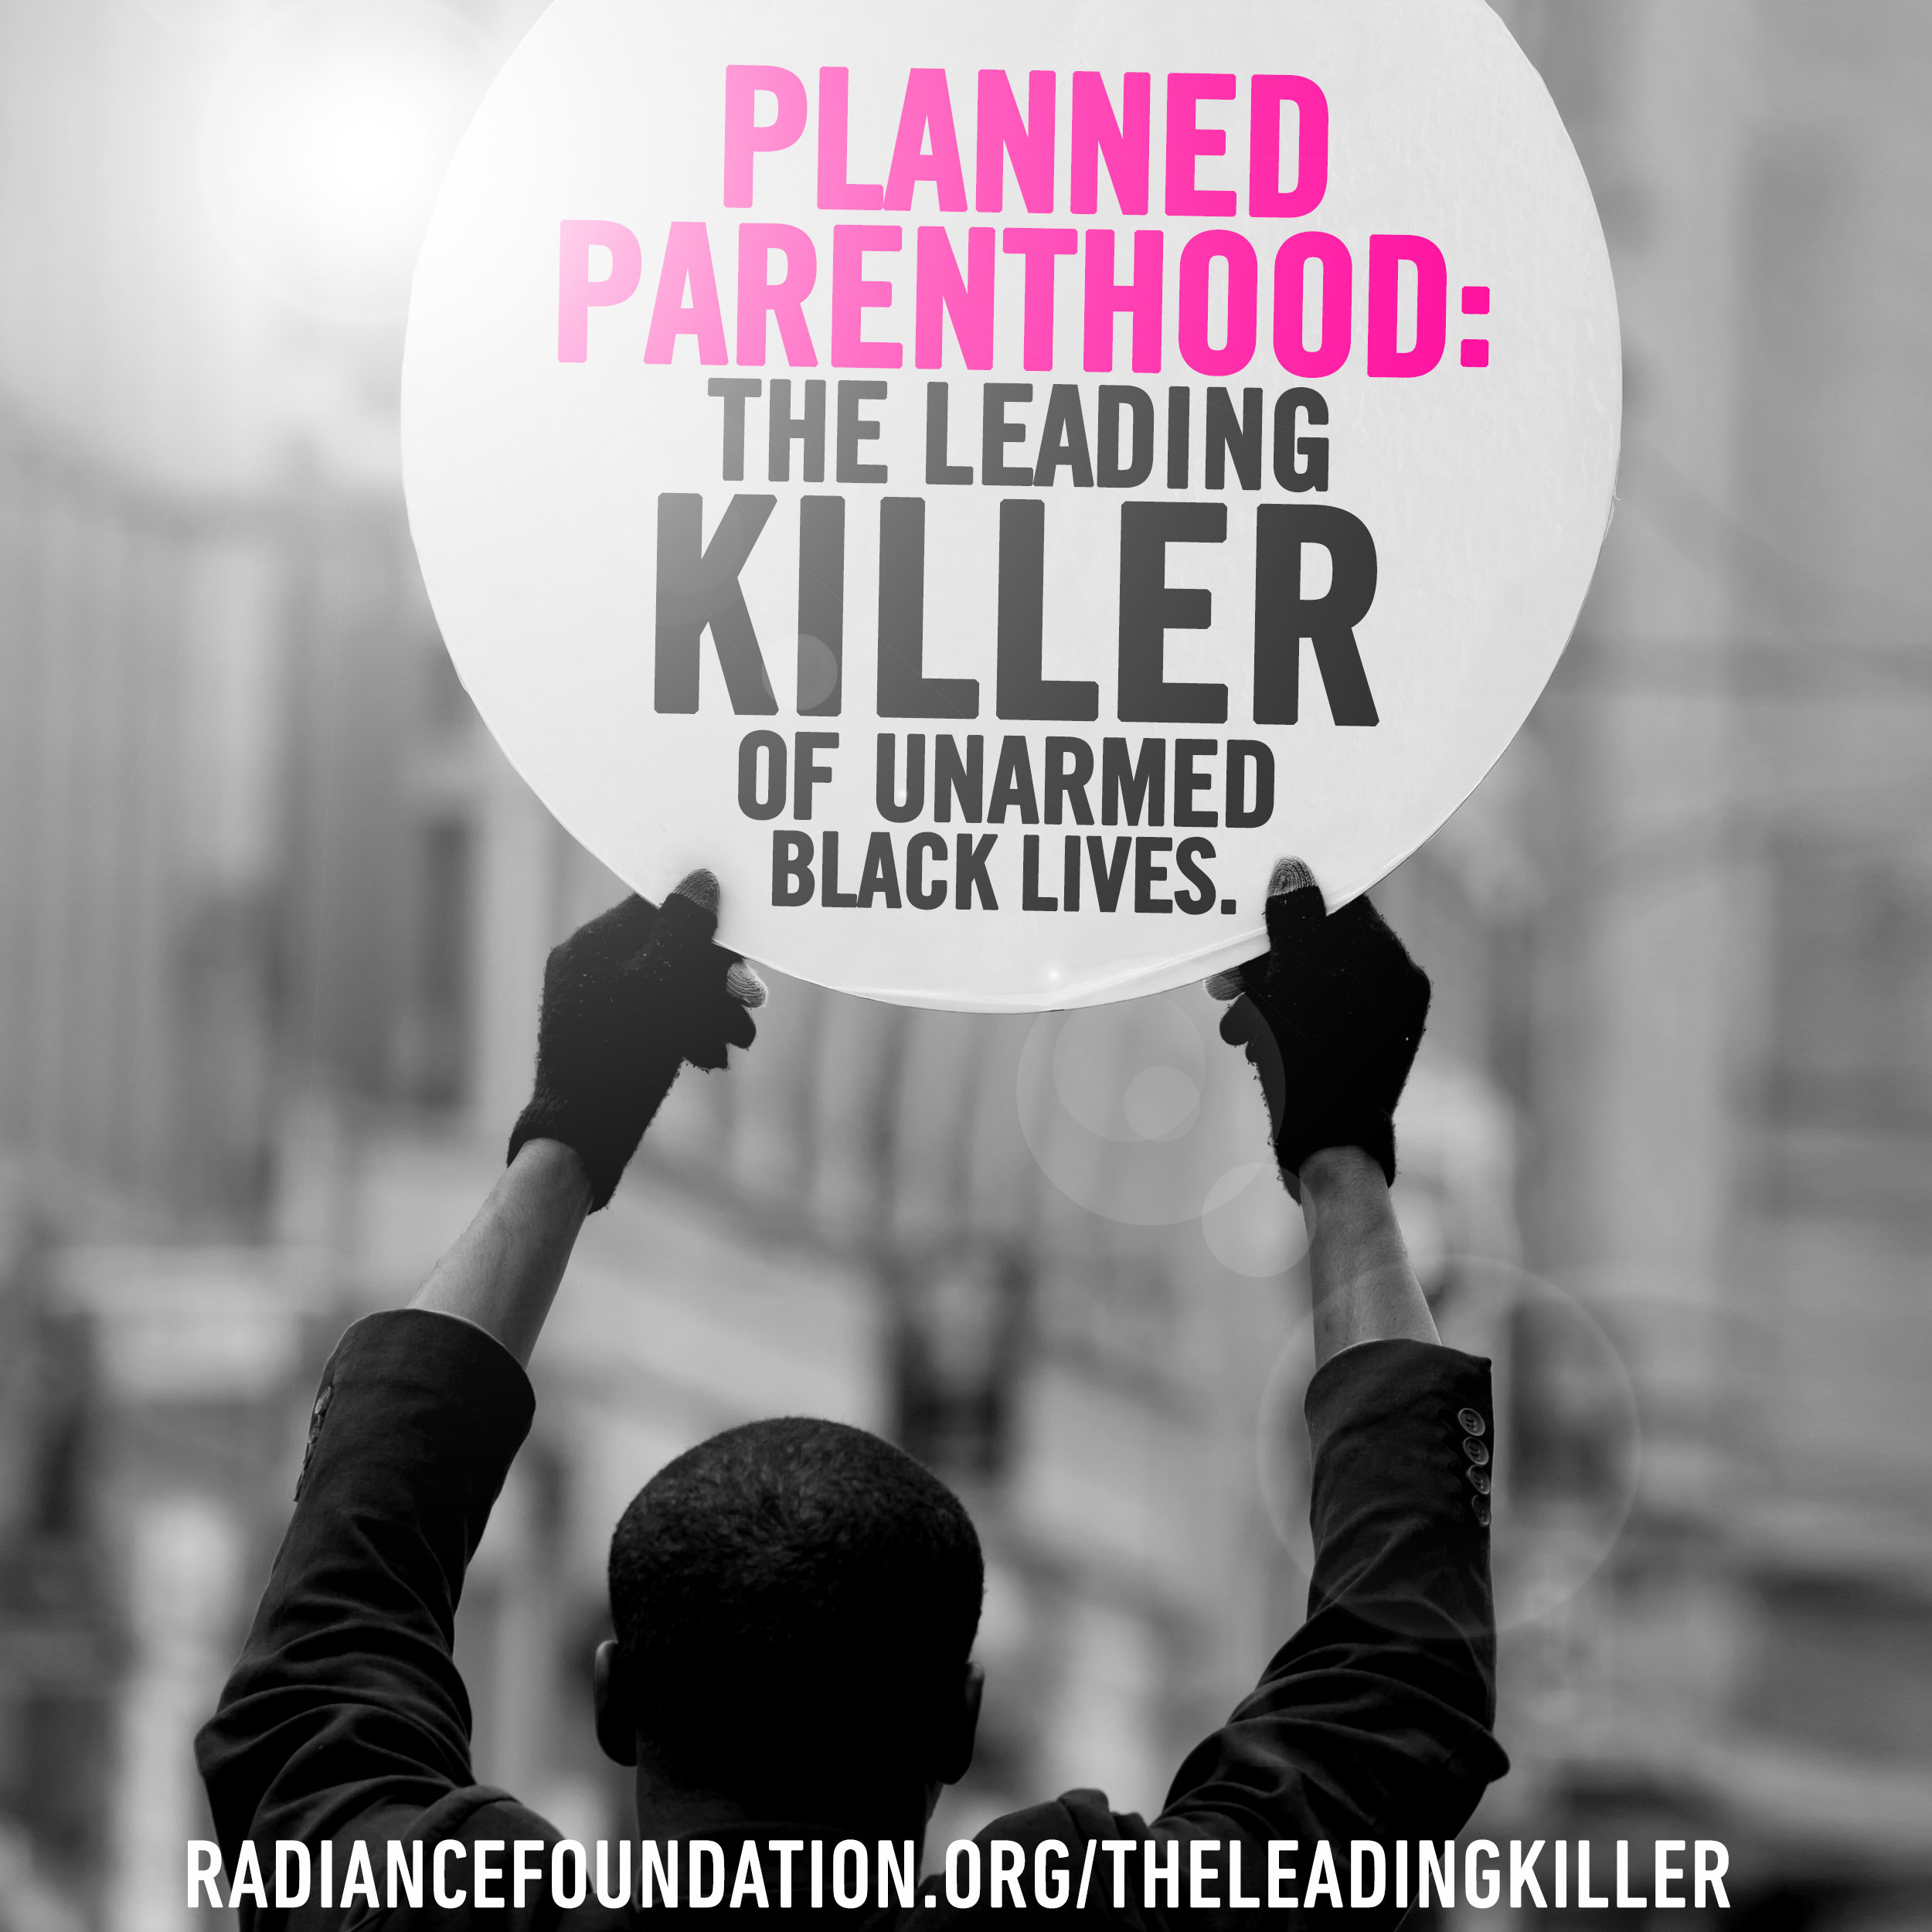 """The Leading Killer"" by The Radiance Foundation"